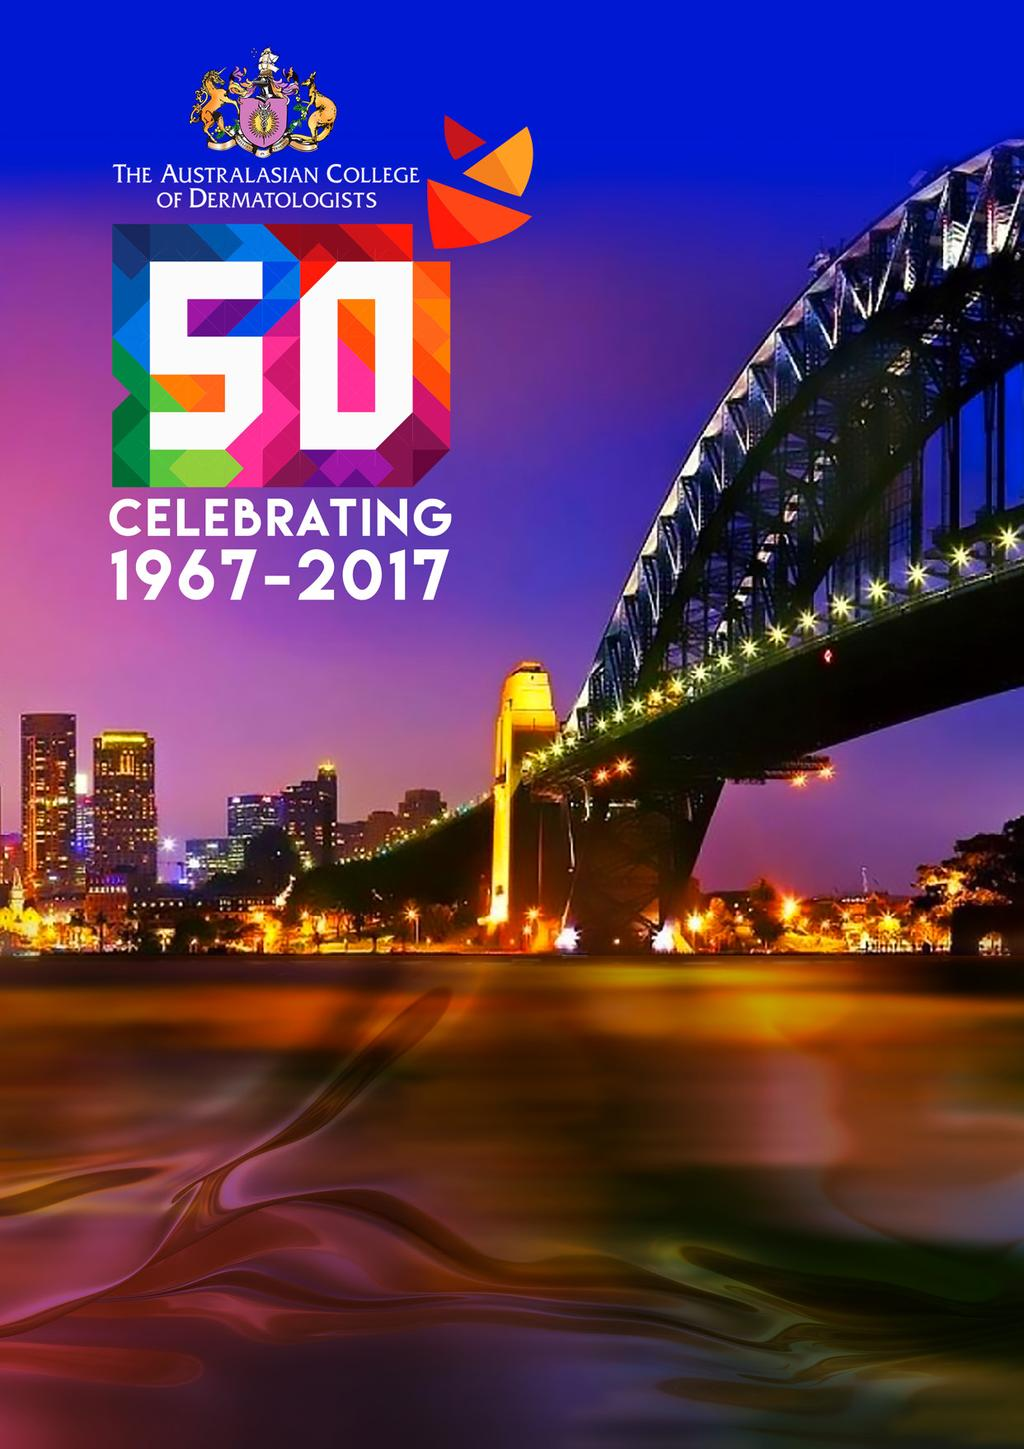 50TH ANNUAL SCIENTIFIC MEETING INCLUDES THE MEETING OF THE AUSTRALIAN DERMATOLOGY NURSES ASSOCIATION SONSORSHI AND TRADE